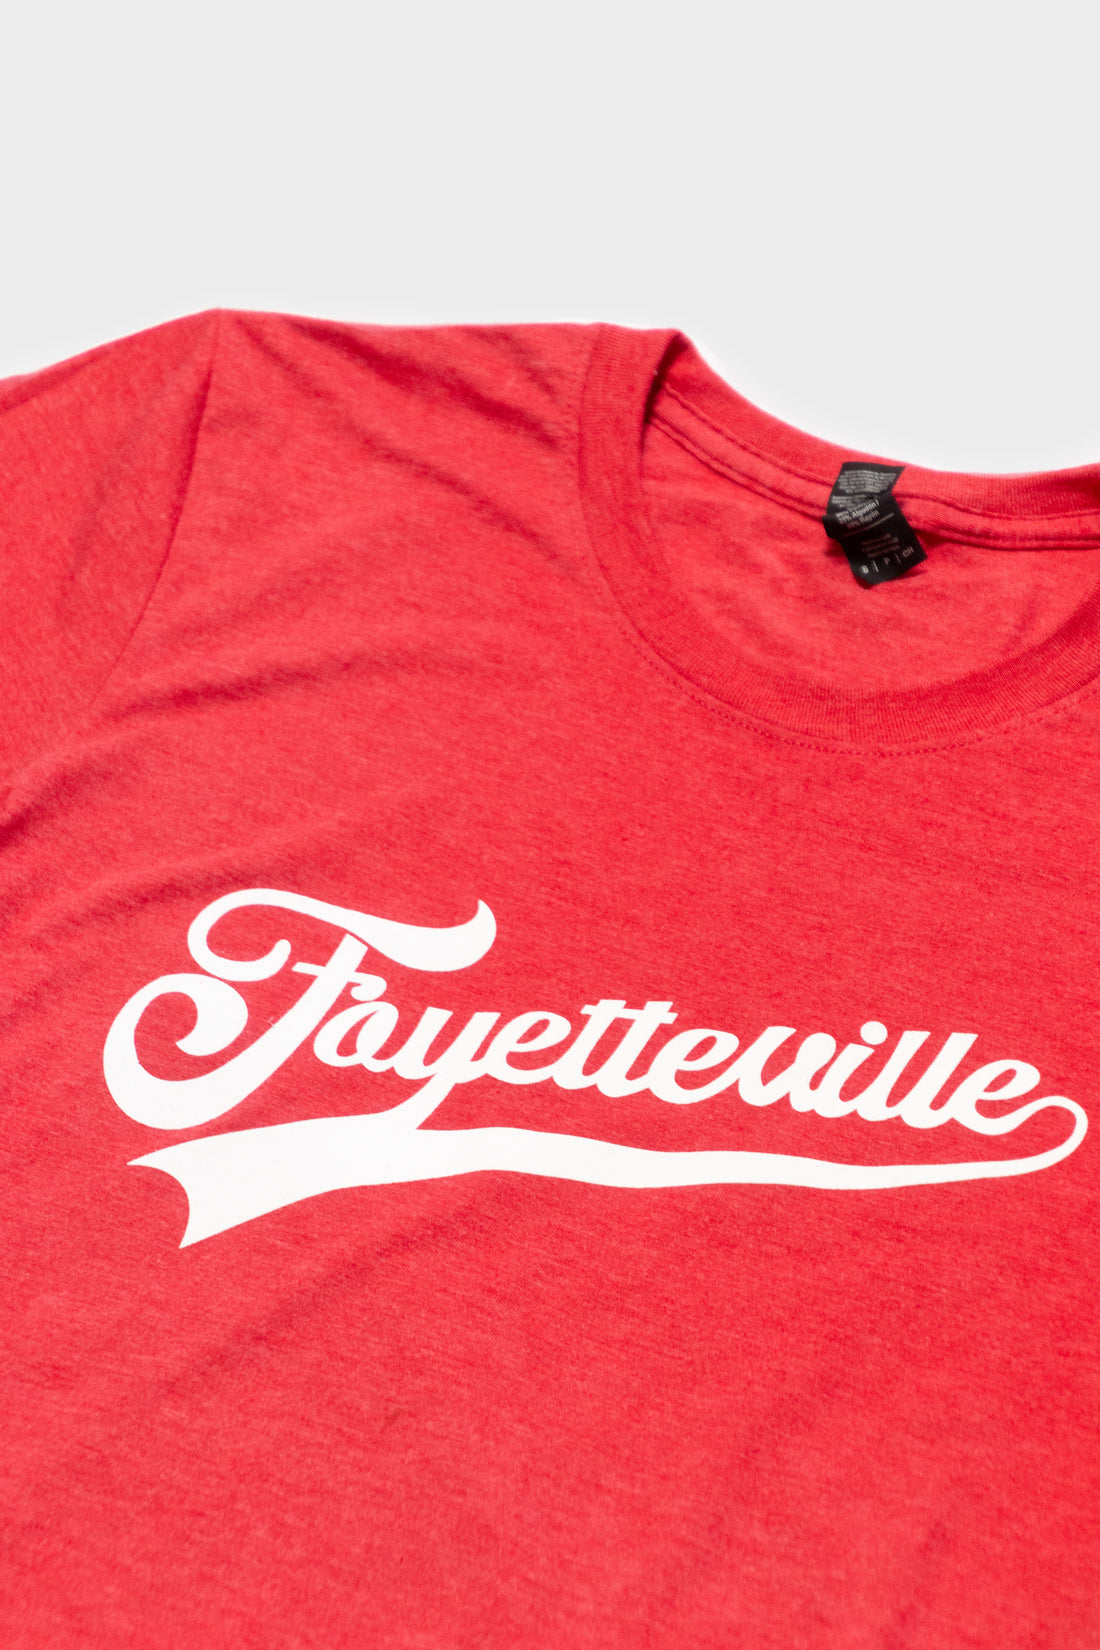 Kreative Dimensions Fayetteville Tee (Red Heather/White)